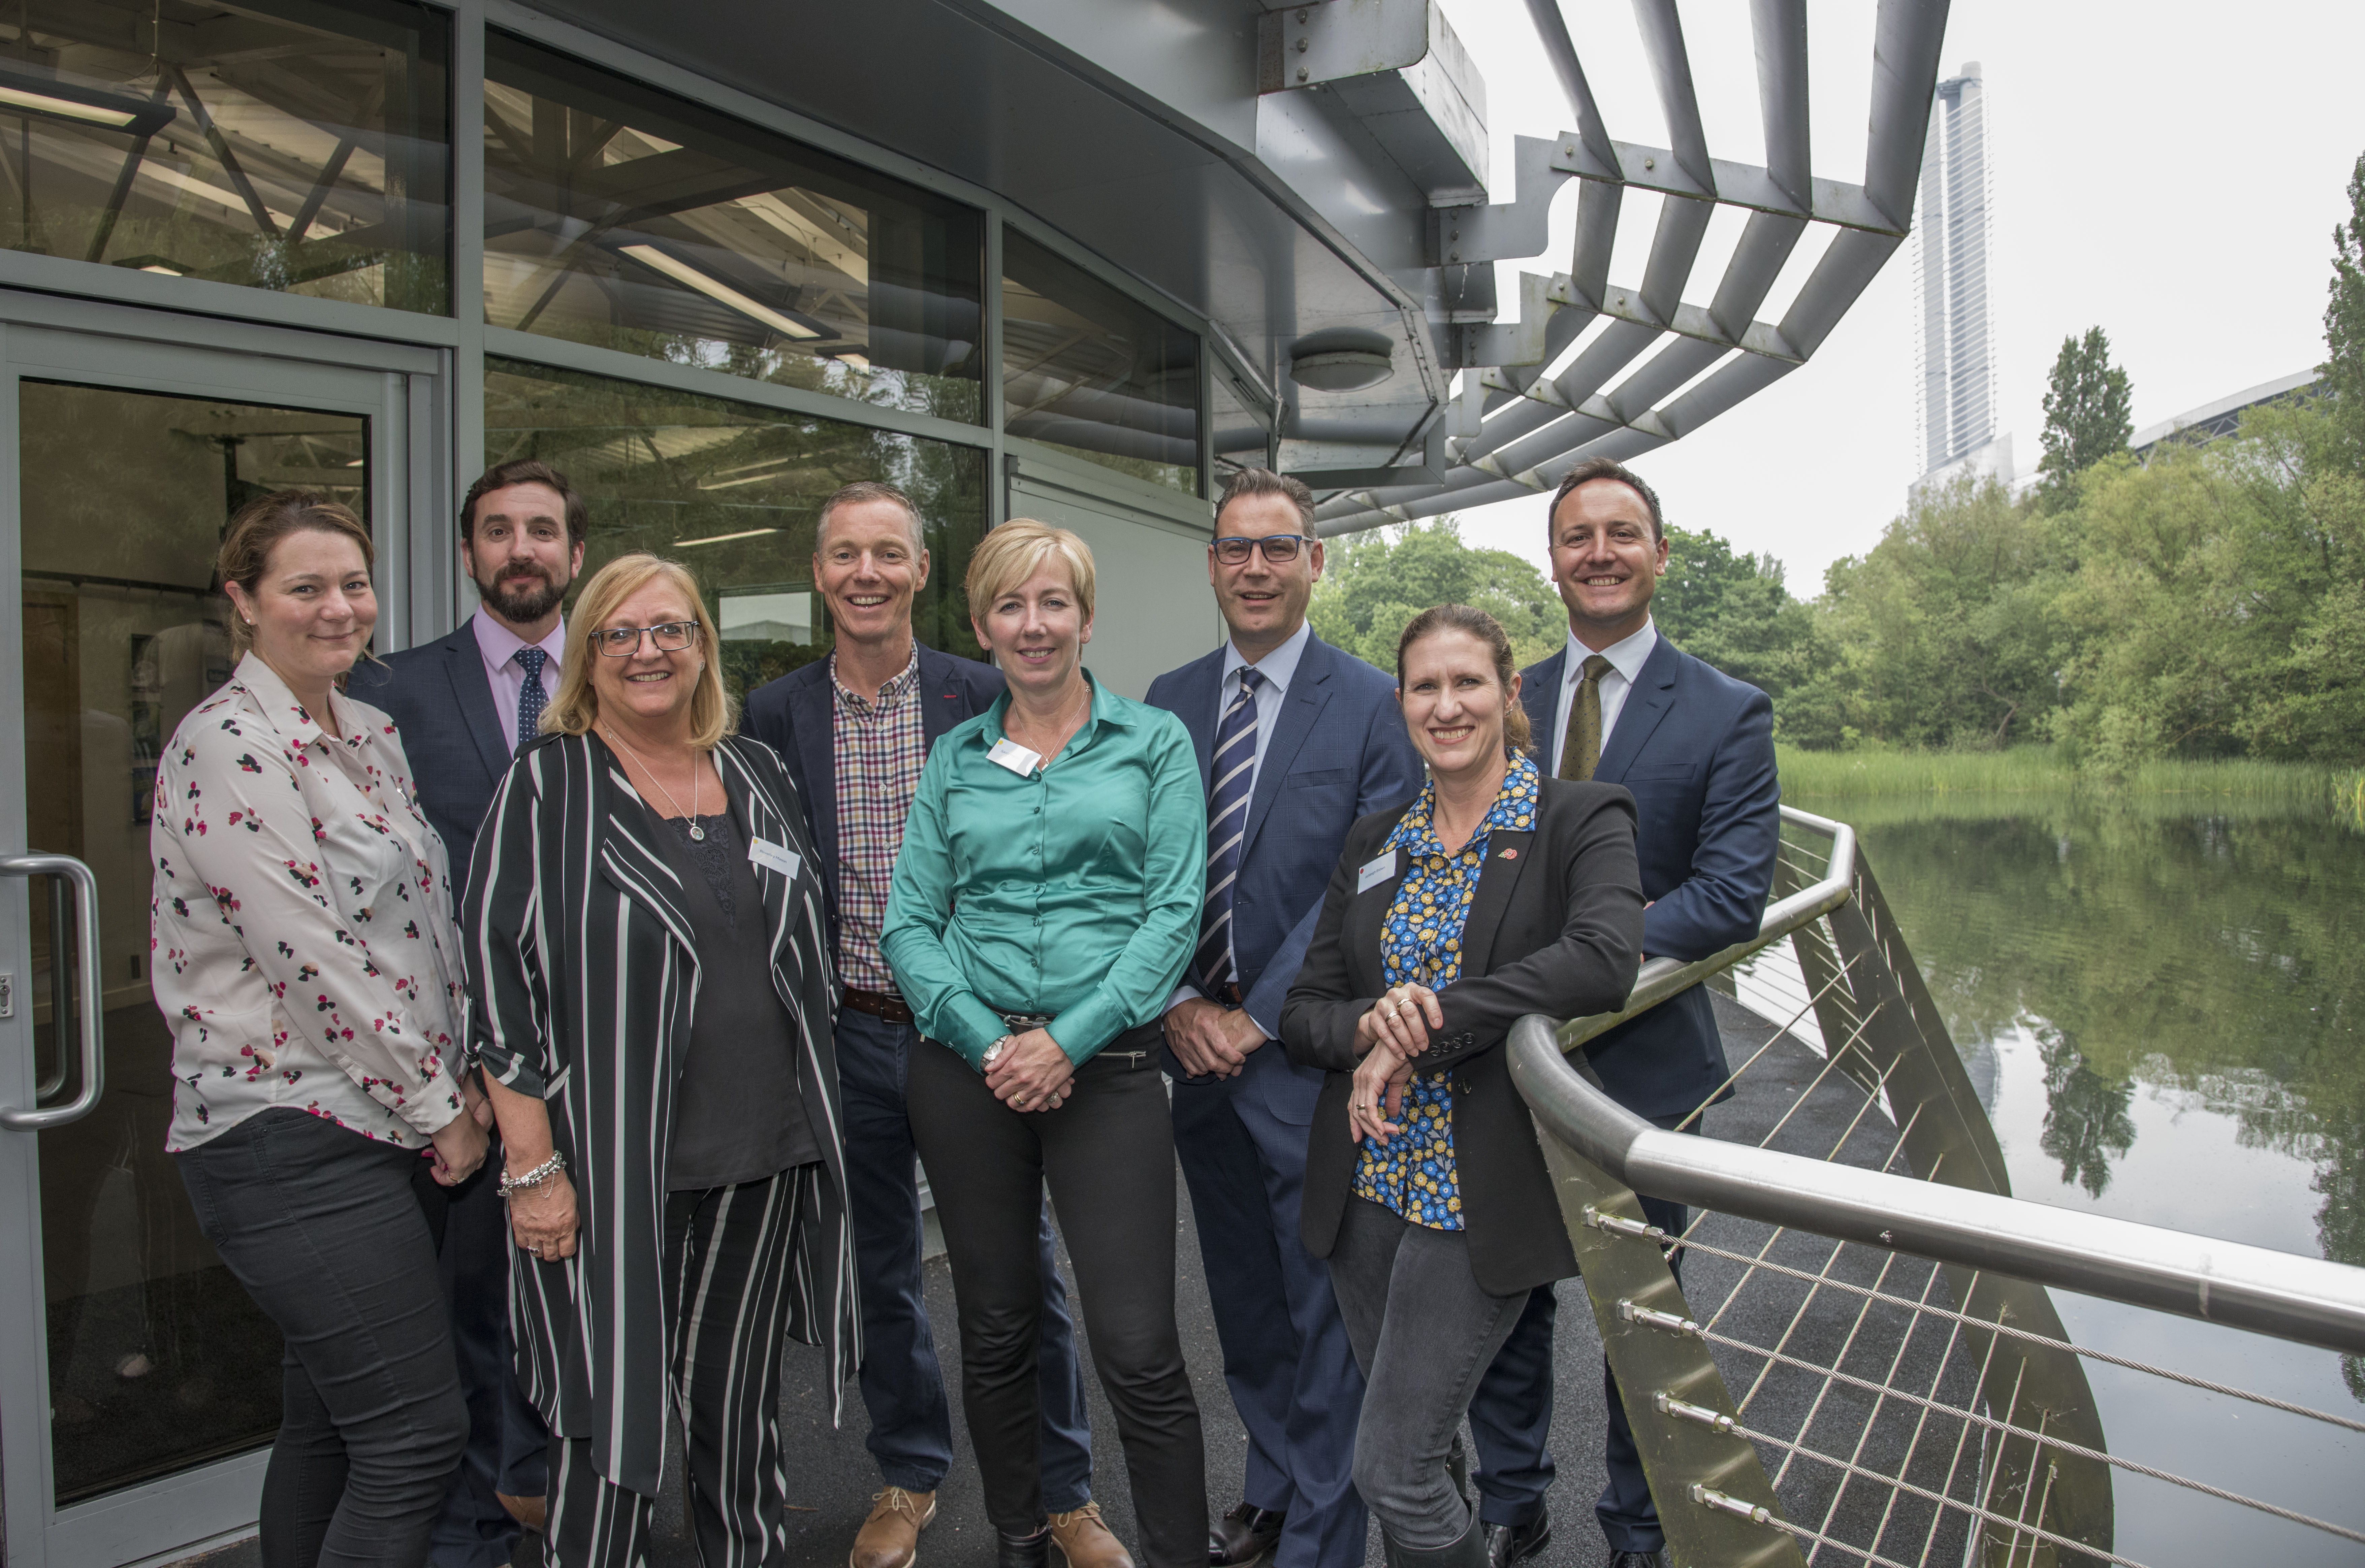 Pictured from left to right are IWFM Home Counties committee members: Hettie Orpin, Adam Phillips, Beverley Mason, Adrian Powell, Sarah Prentice, Neil Grundon, Bradley Smith and Ashleigh Brown, IWFM Non-Executive Board Deputy Chairman